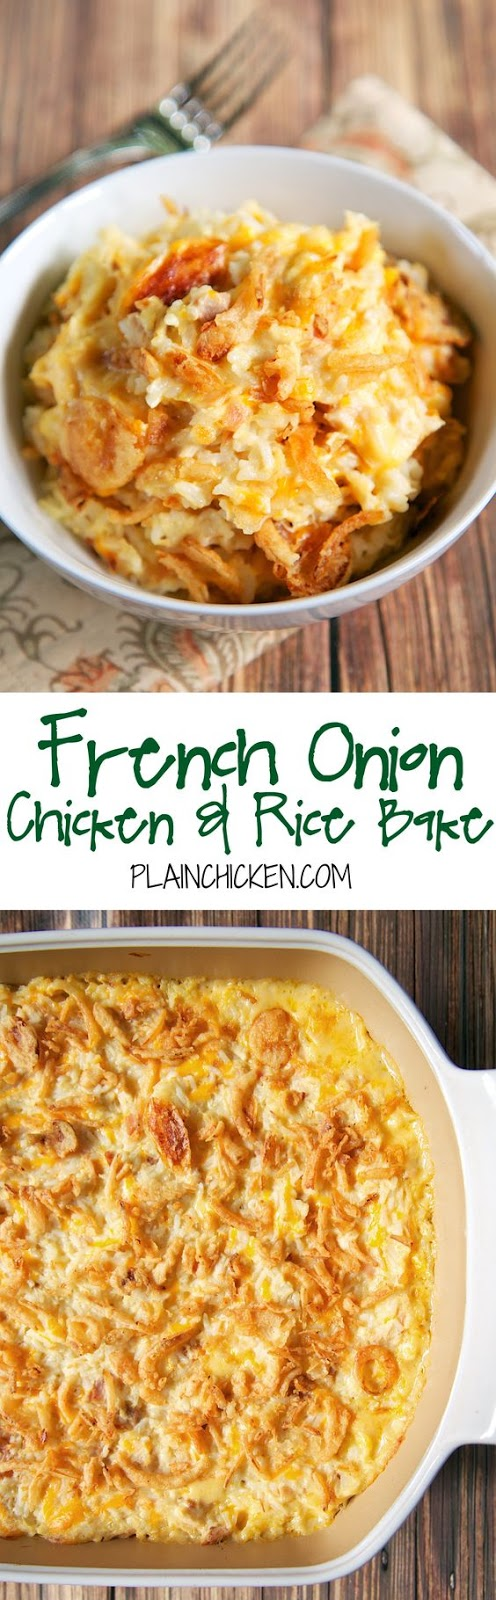 ★★★★☆ 7561 ratings | FRENCH ONION CHICKEN AND RICE BAKE  #HEALTHYFOOD #EASYRECIPES #DINNER #LAUCH #DELICIOUS #EASY #HOLIDAYS #RECIPE #DESSERTS #SPECIALDIET #WORLDCUISINE #CAKE #APPETIZERS #HEALTHYRECIPES #DRINKS #COOKINGMETHOD #ITALIANRECIPES #MEAT #VEGANRECIPES #COOKIES #PASTA #FRUIT #SALAD #SOUPAPPETIZERS #NONALCOHOLICDRINKS #MEALPLANNING #VEGETABLES #SOUP #PASTRY #CHOCOLATE #DAIRY #ALCOHOLICDRINKS #BULGURSALAD #BAKING #SNACKS #BEEFRECIPES #MEATAPPETIZERS #MEXICANRECIPES #BREAD #ASIANRECIPES #SEAFOODAPPETIZERS #MUFFINS #BREAKFASTANDBRUNCH #CONDIMENTS #CUPCAKES #CHEESE #CHICKENRECIPES #PIE #COFFEE #NOBAKEDESSERTS #HEALTHYSNACKS #SEAFOOD #GRAIN #LUNCHESDINNERS #MEXICAN #QUICKBREAD #LIQUOR